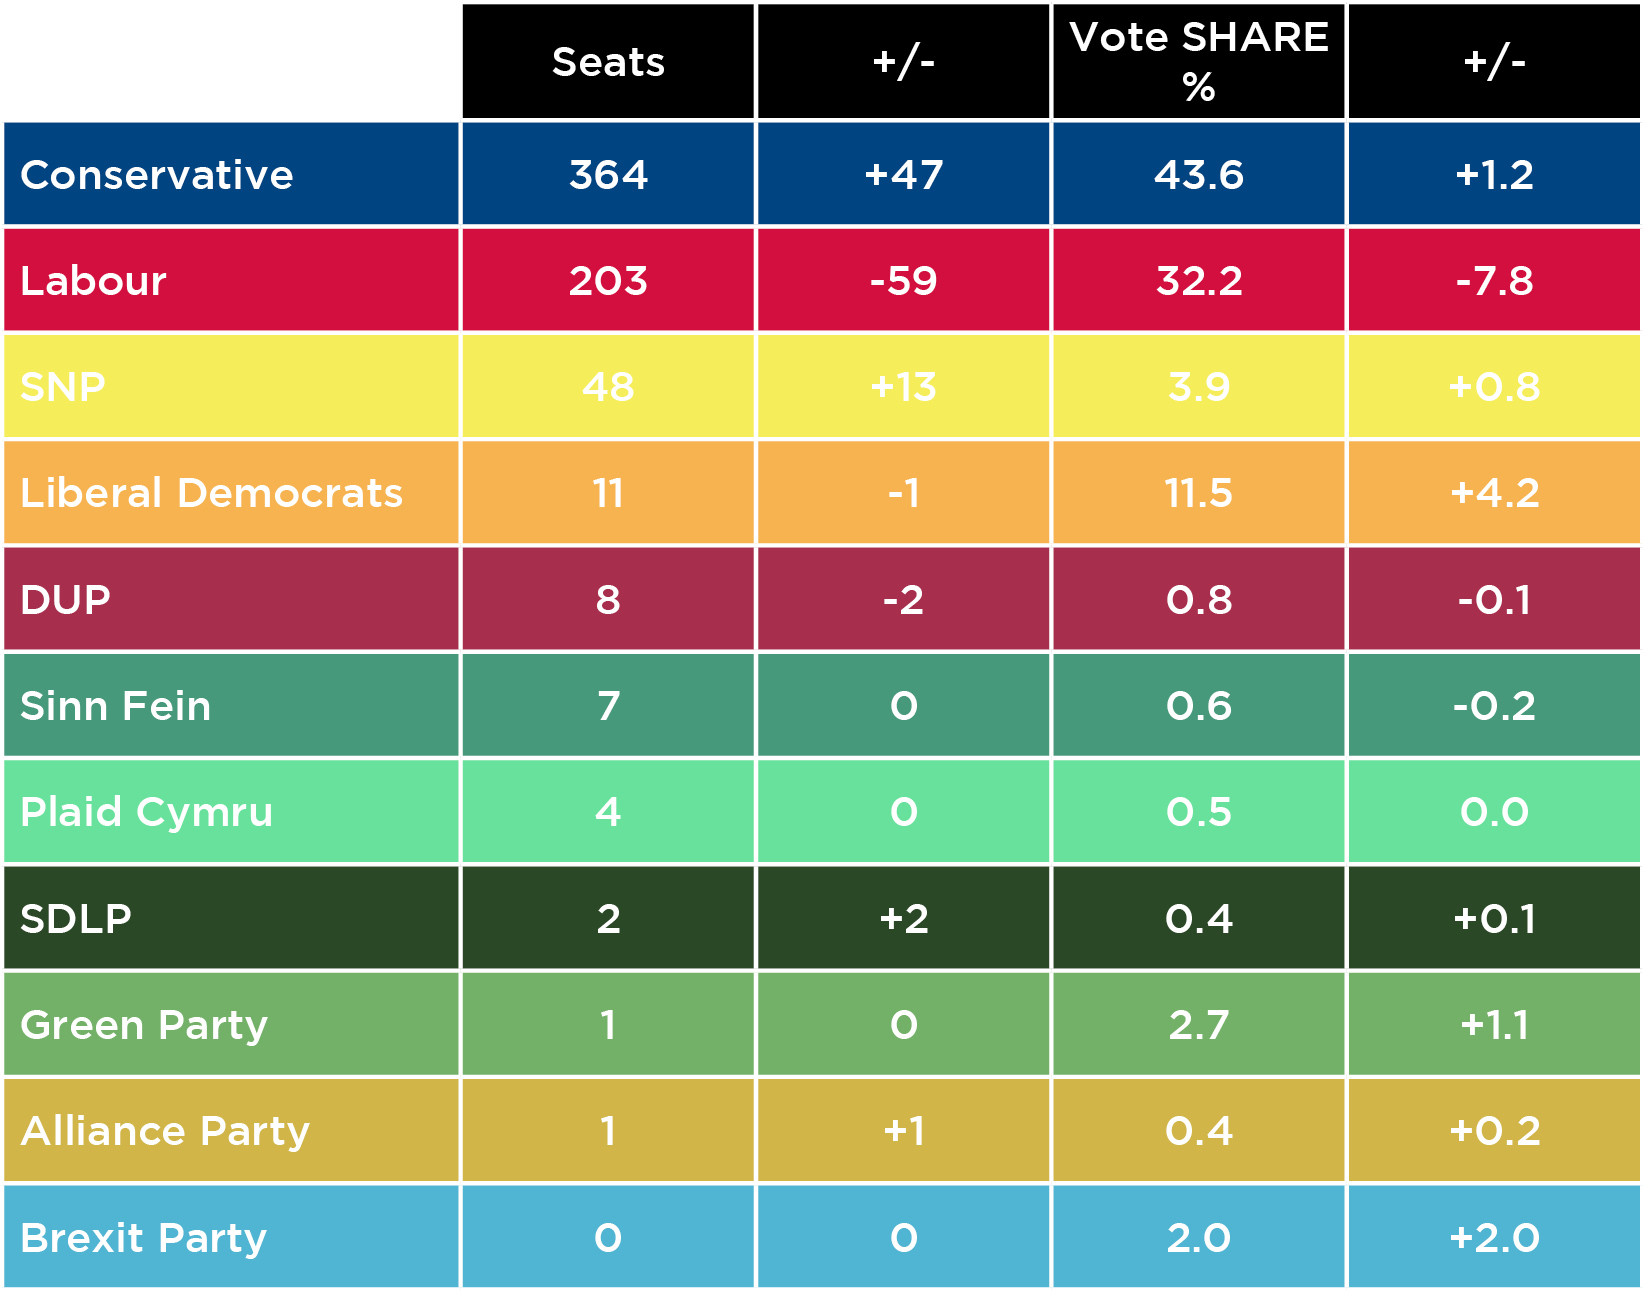 local-elections-2019-results-table-5df3a1f65782a.jpg (original)